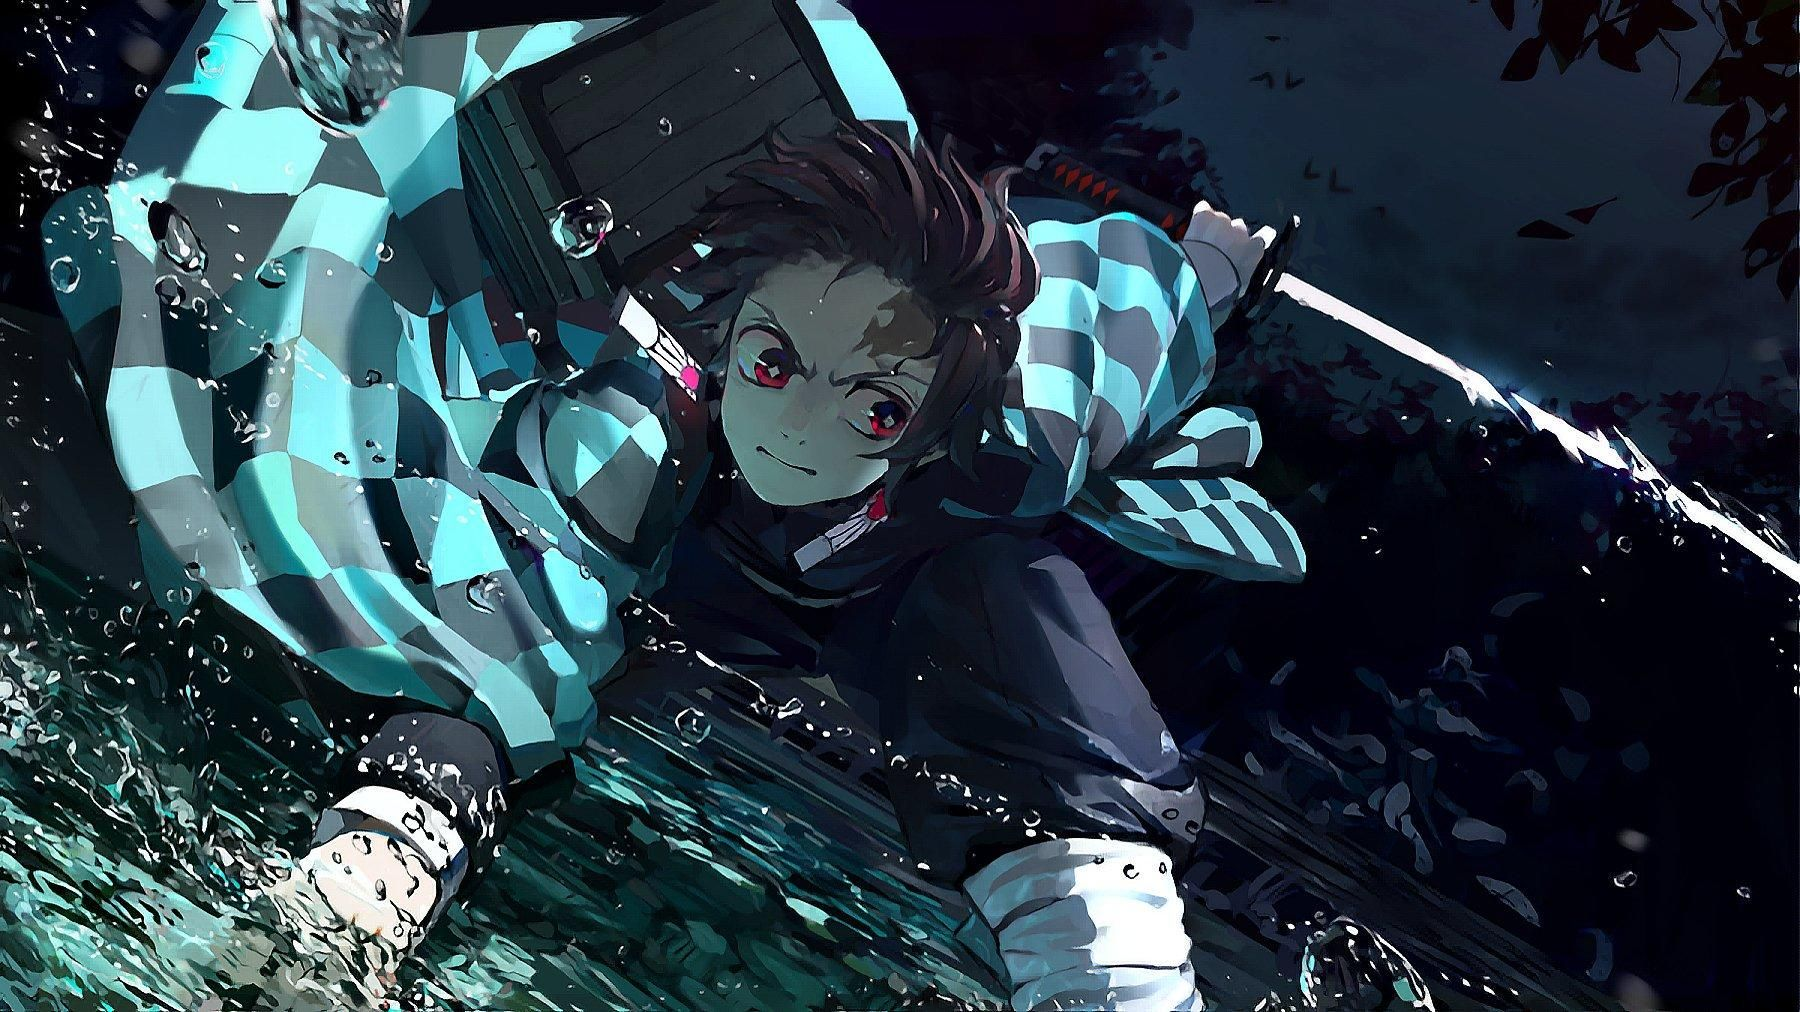 鬼滅の刃 Demon Slayer Kimetsu no Yaiba in 2020 Anime